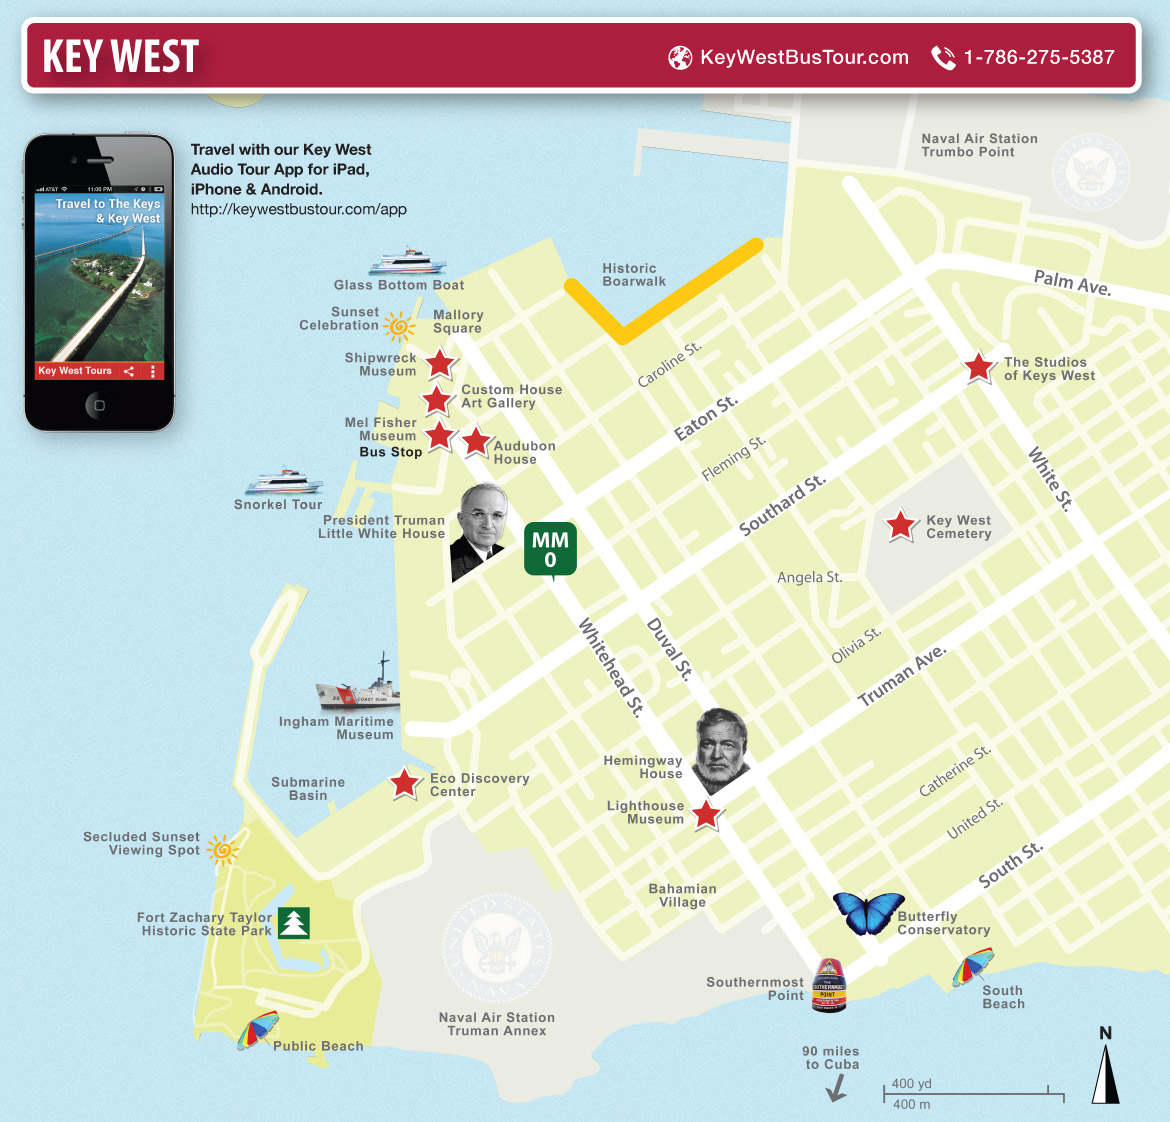 Florida Keys Maps.Key West And Florida Keys Maps Miami Beach 411 Travel Store